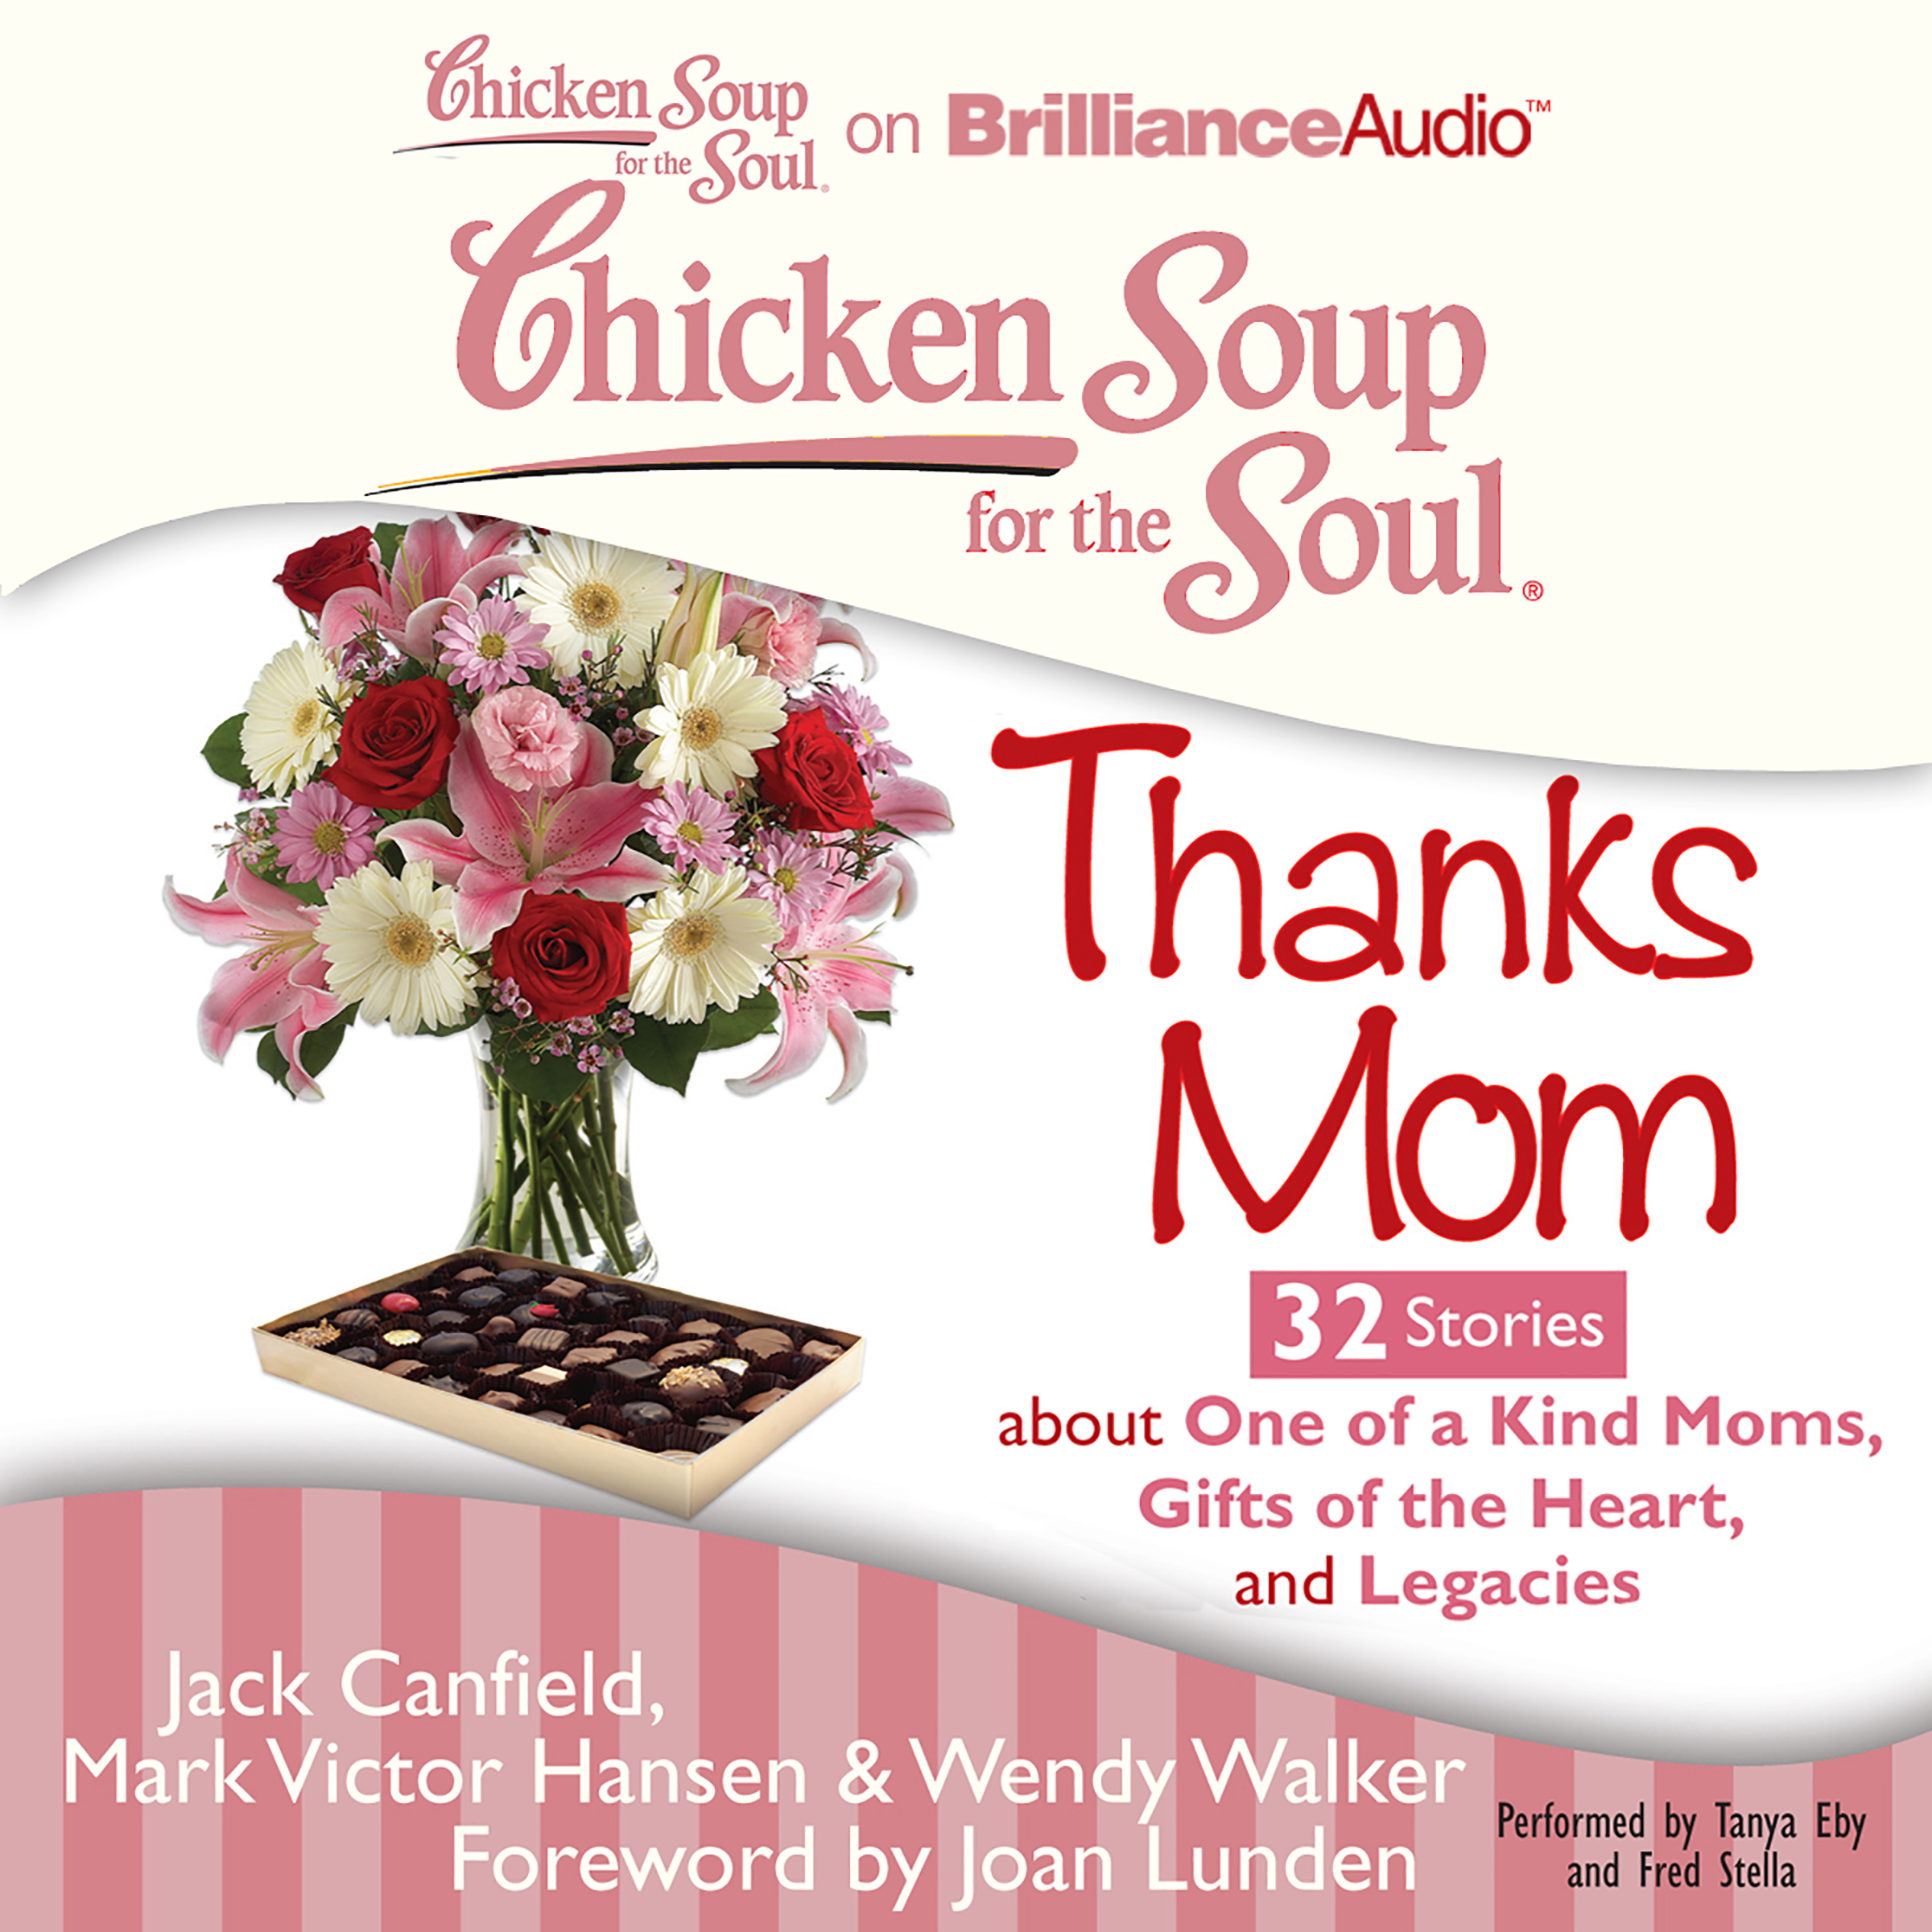 Printable Chicken Soup for the Soul: Thanks Mom - 32 Stories about One of a Kind Moms, Gifts of the Heart, and Legacies Audiobook Cover Art